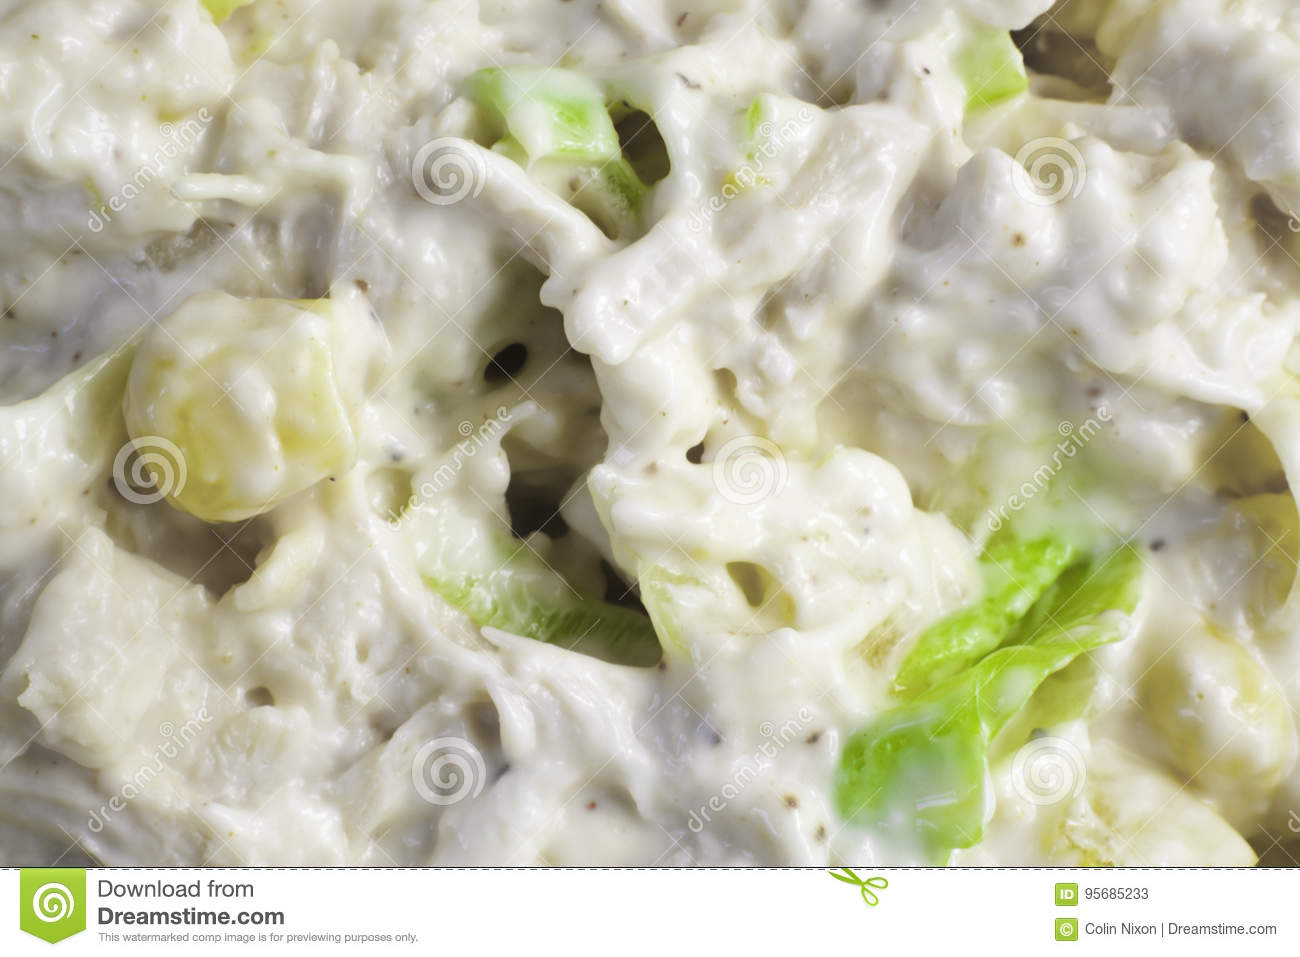 Sweetcorn and Chicken Mayo